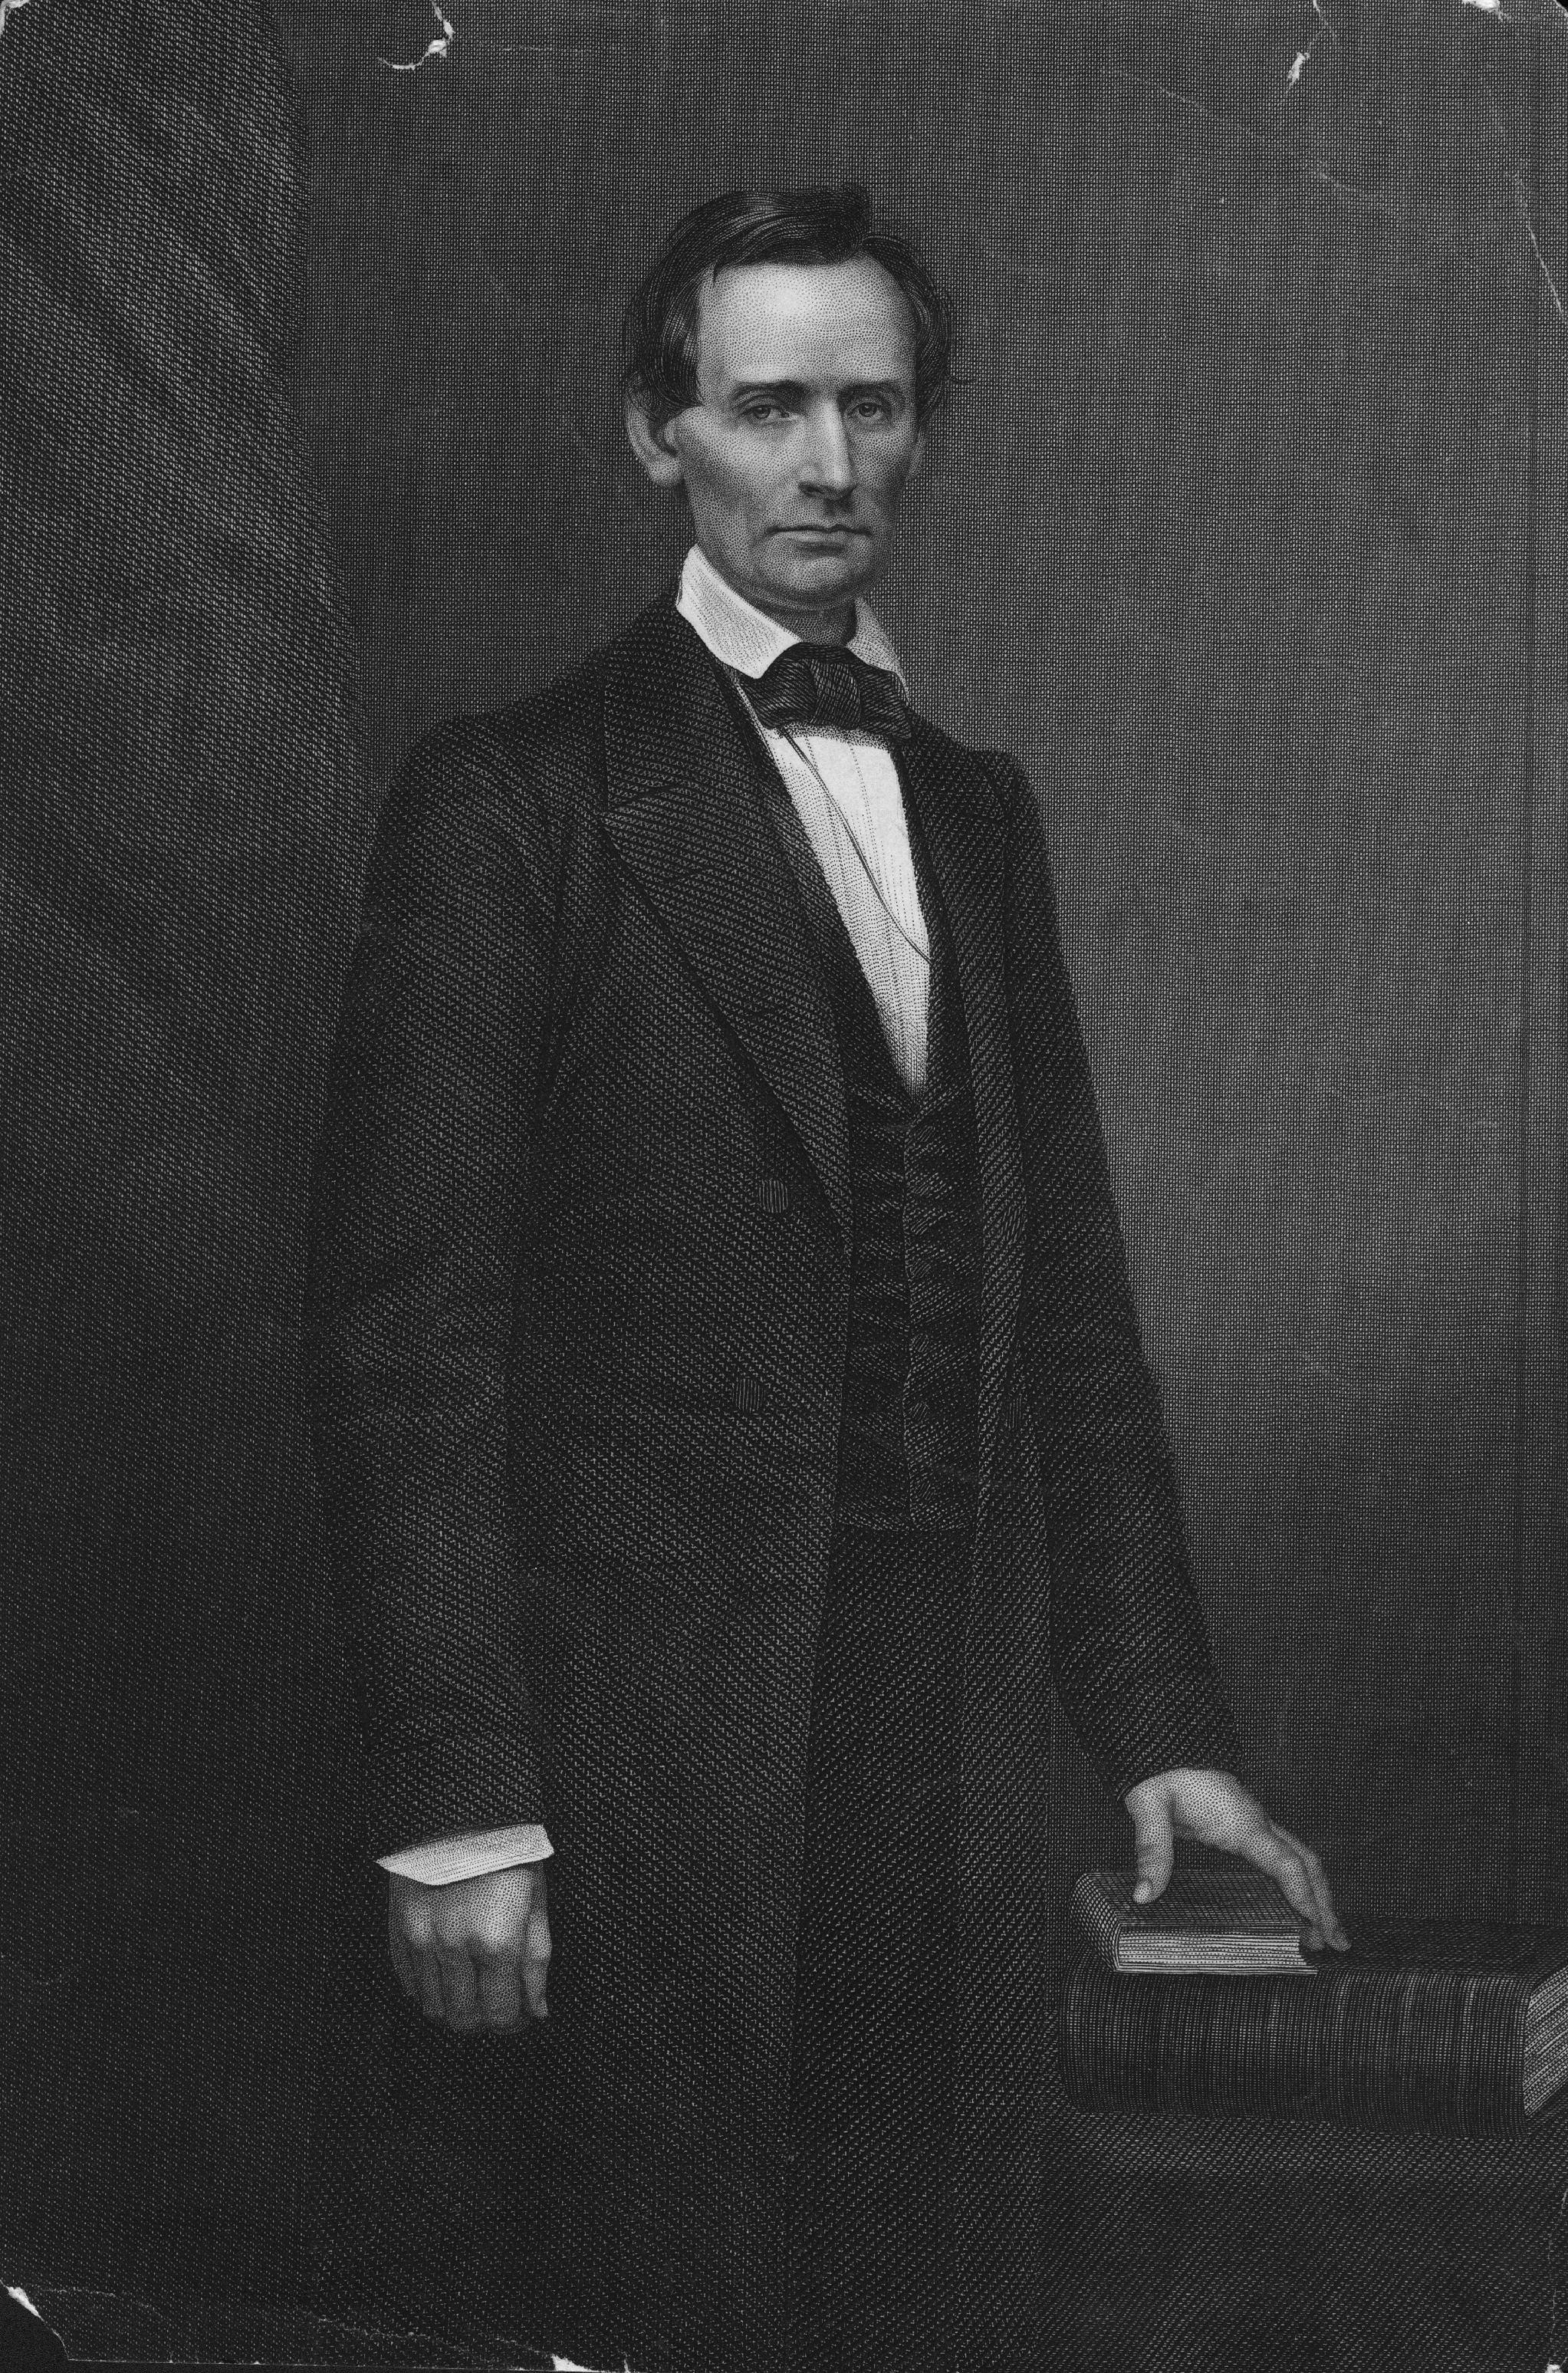 Engraving of Lincoln's Cooper Union portrait